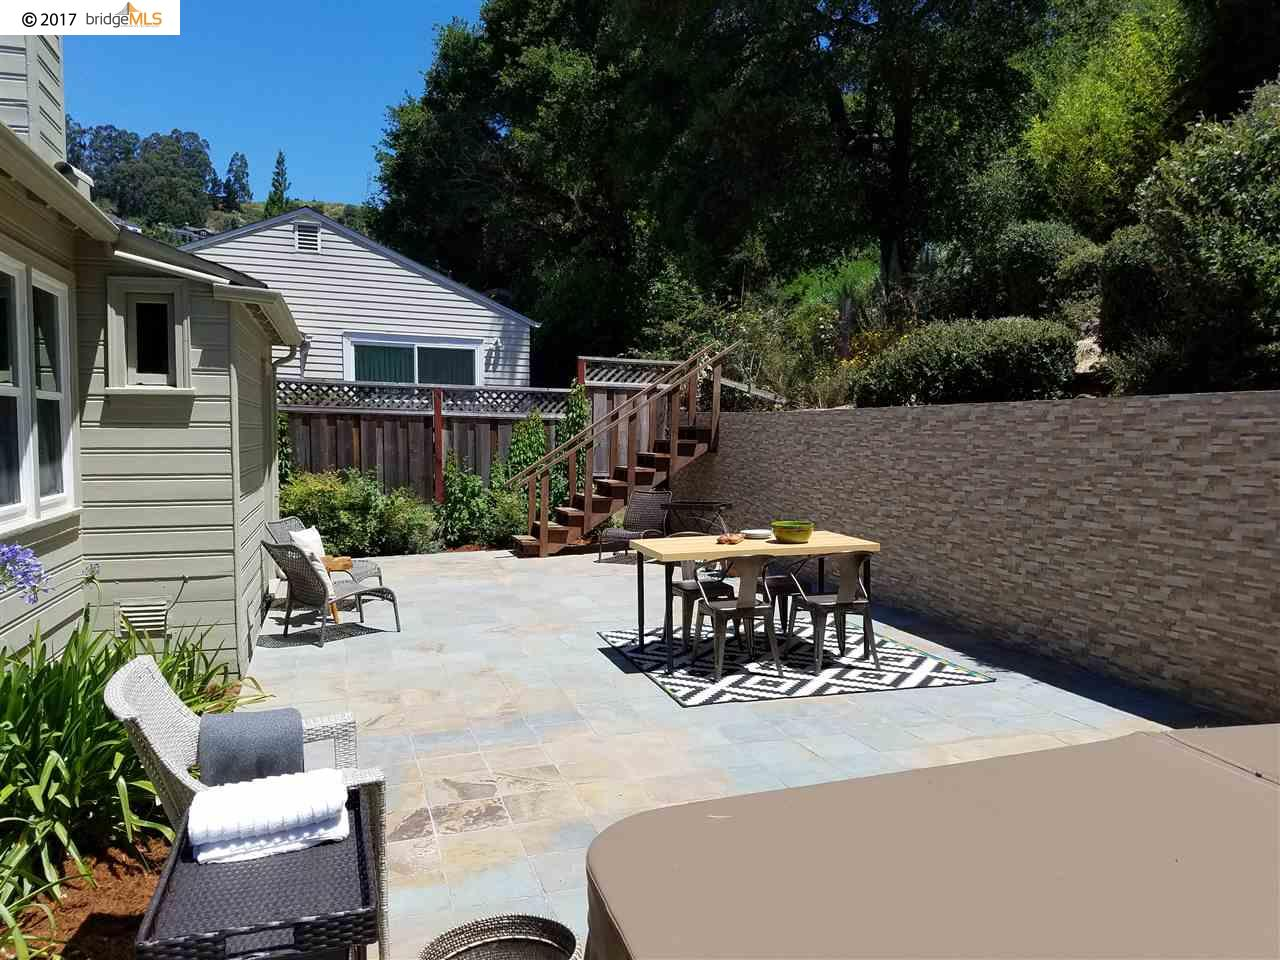 Additional photo for property listing at 838 Mountain Blvd  Oakland, California 94611 Estados Unidos